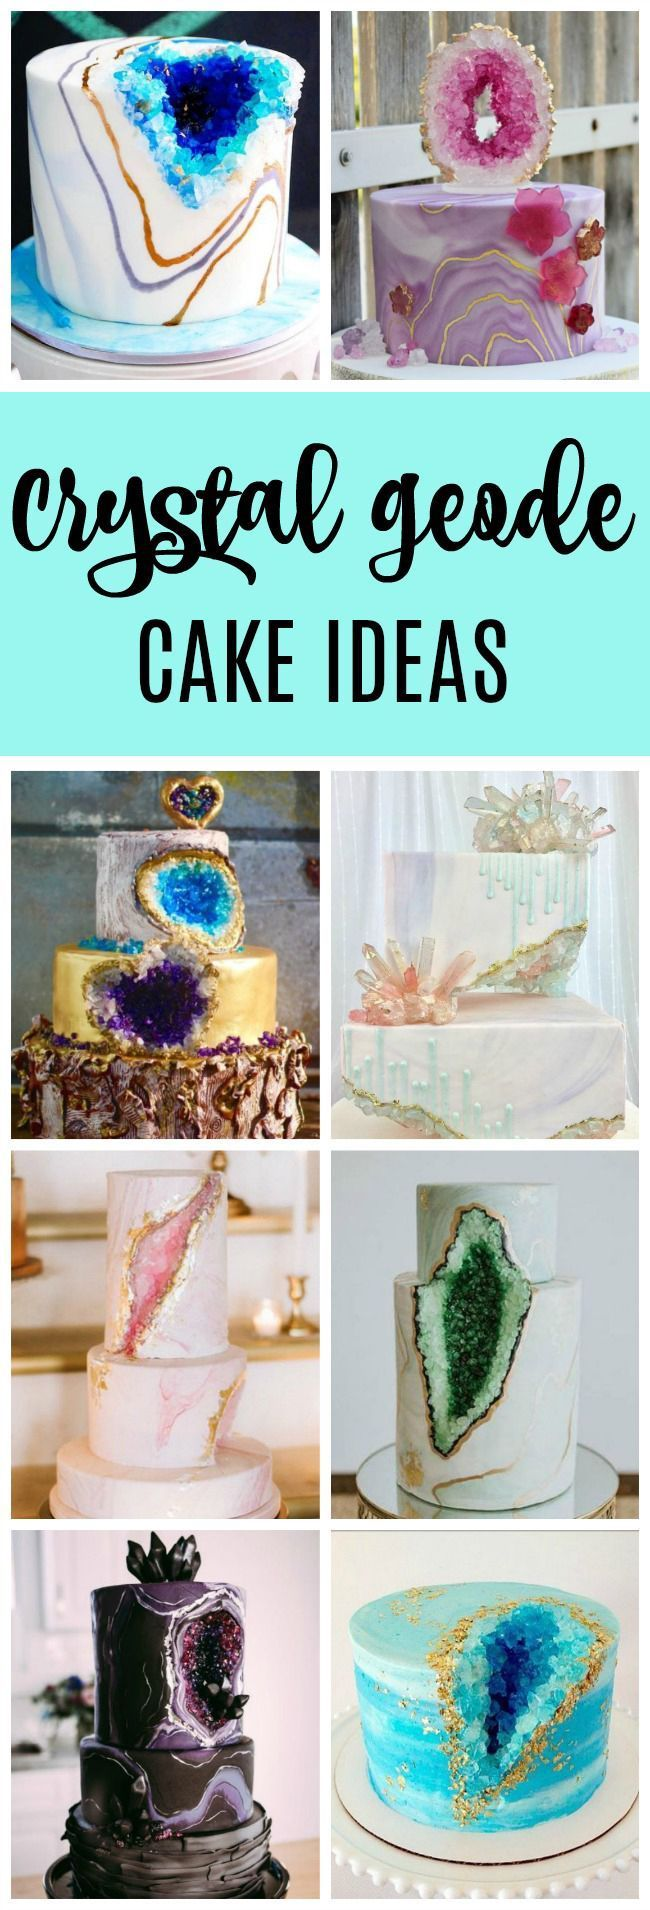 The geode cake trend is going strong this year. Here's 15 Crystal Geode Birthday Cakes to inspire your own creation. | cake design | birthday cake ideas | wedding cake ideas | geode cake ideas |